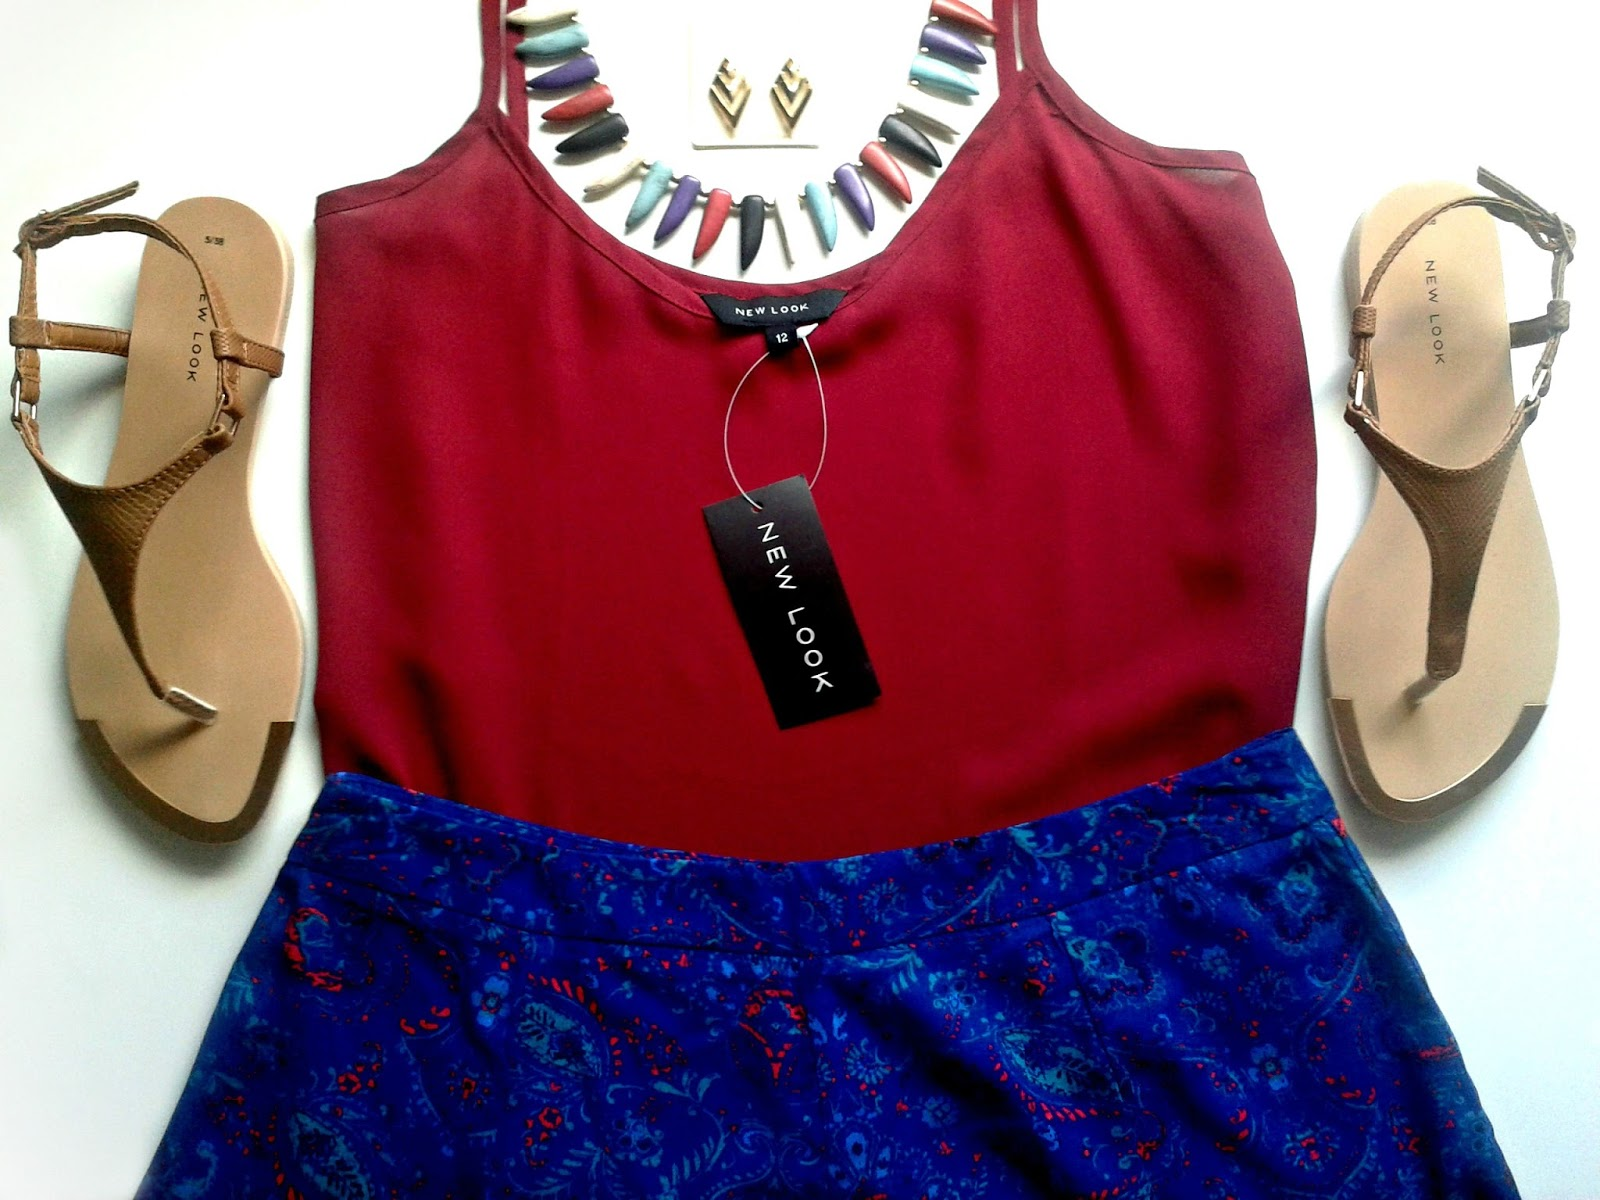 Summer Shorts Style New Look Outfit Review Dark Red V Neck Cami Blue Paisley Print Crochet Hem High Waisted Shorts Tan Leather Look T-Bar Sandals Dark Blue Spike Tooth Necklace Gold Chevron Diamond Stud Earrings